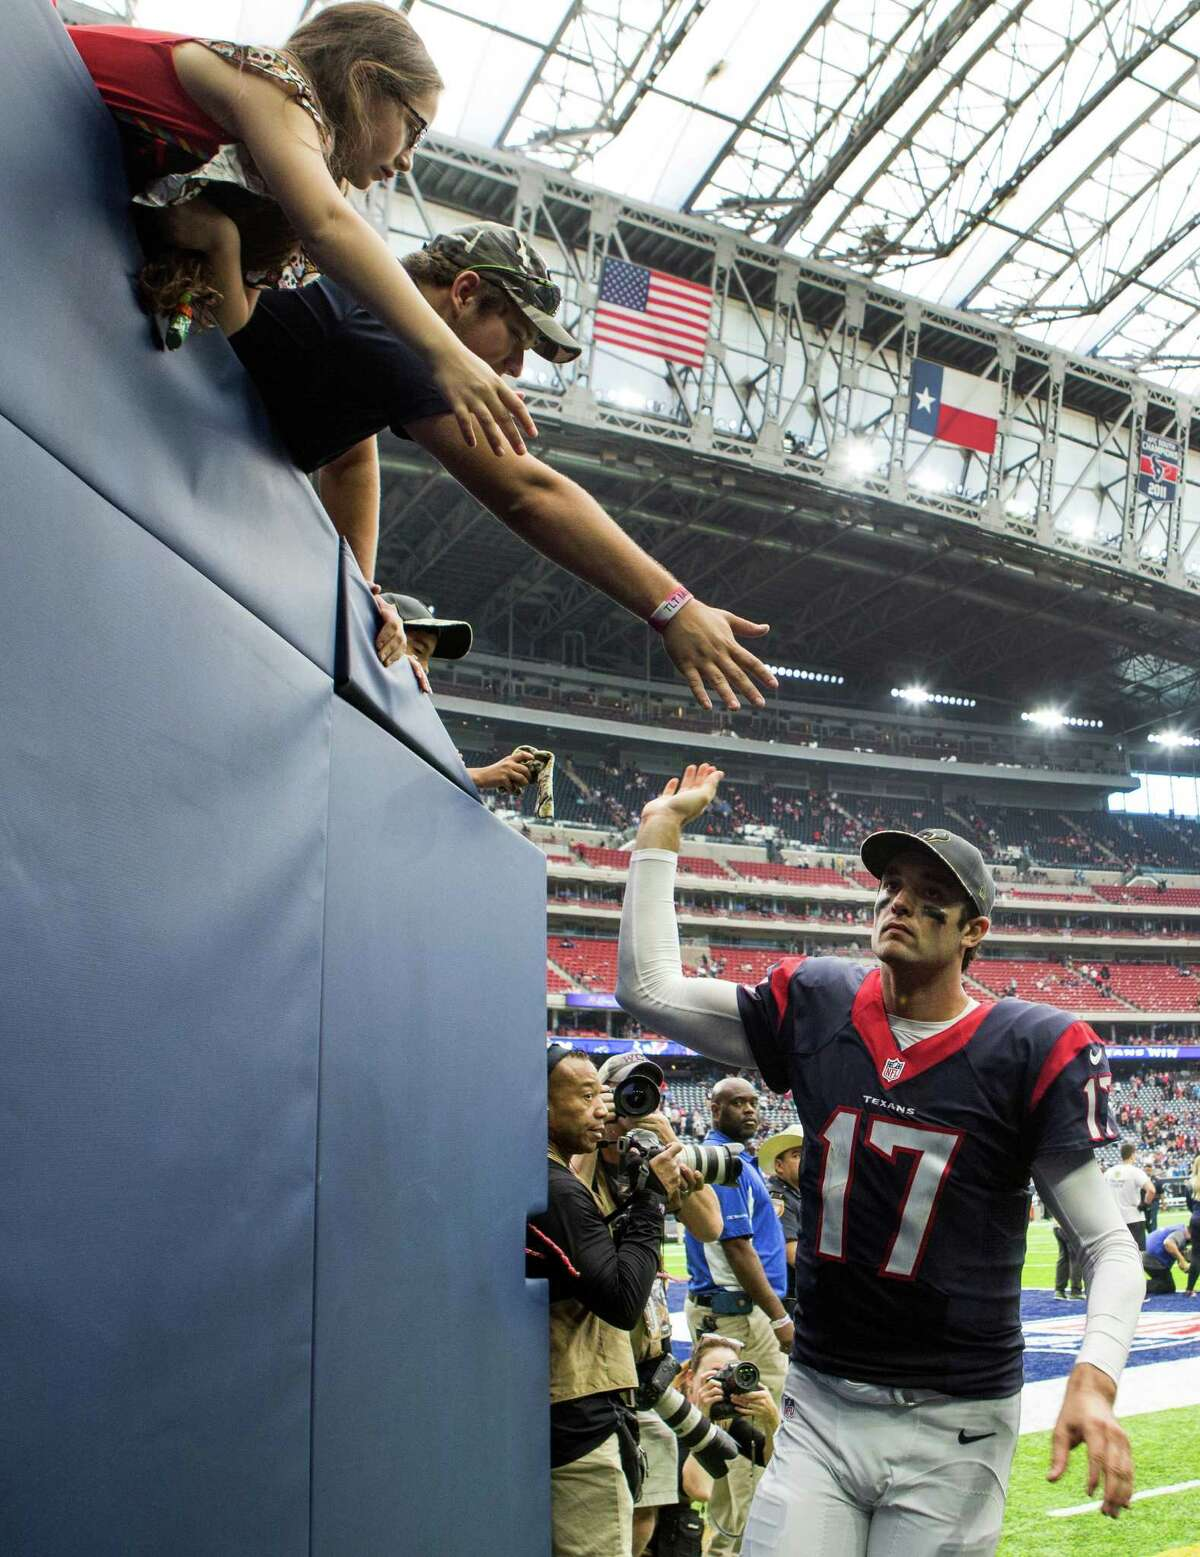 Brock Osweiler, who has been the subject of fan criticism, earned some peace of mind with Sunday's win.